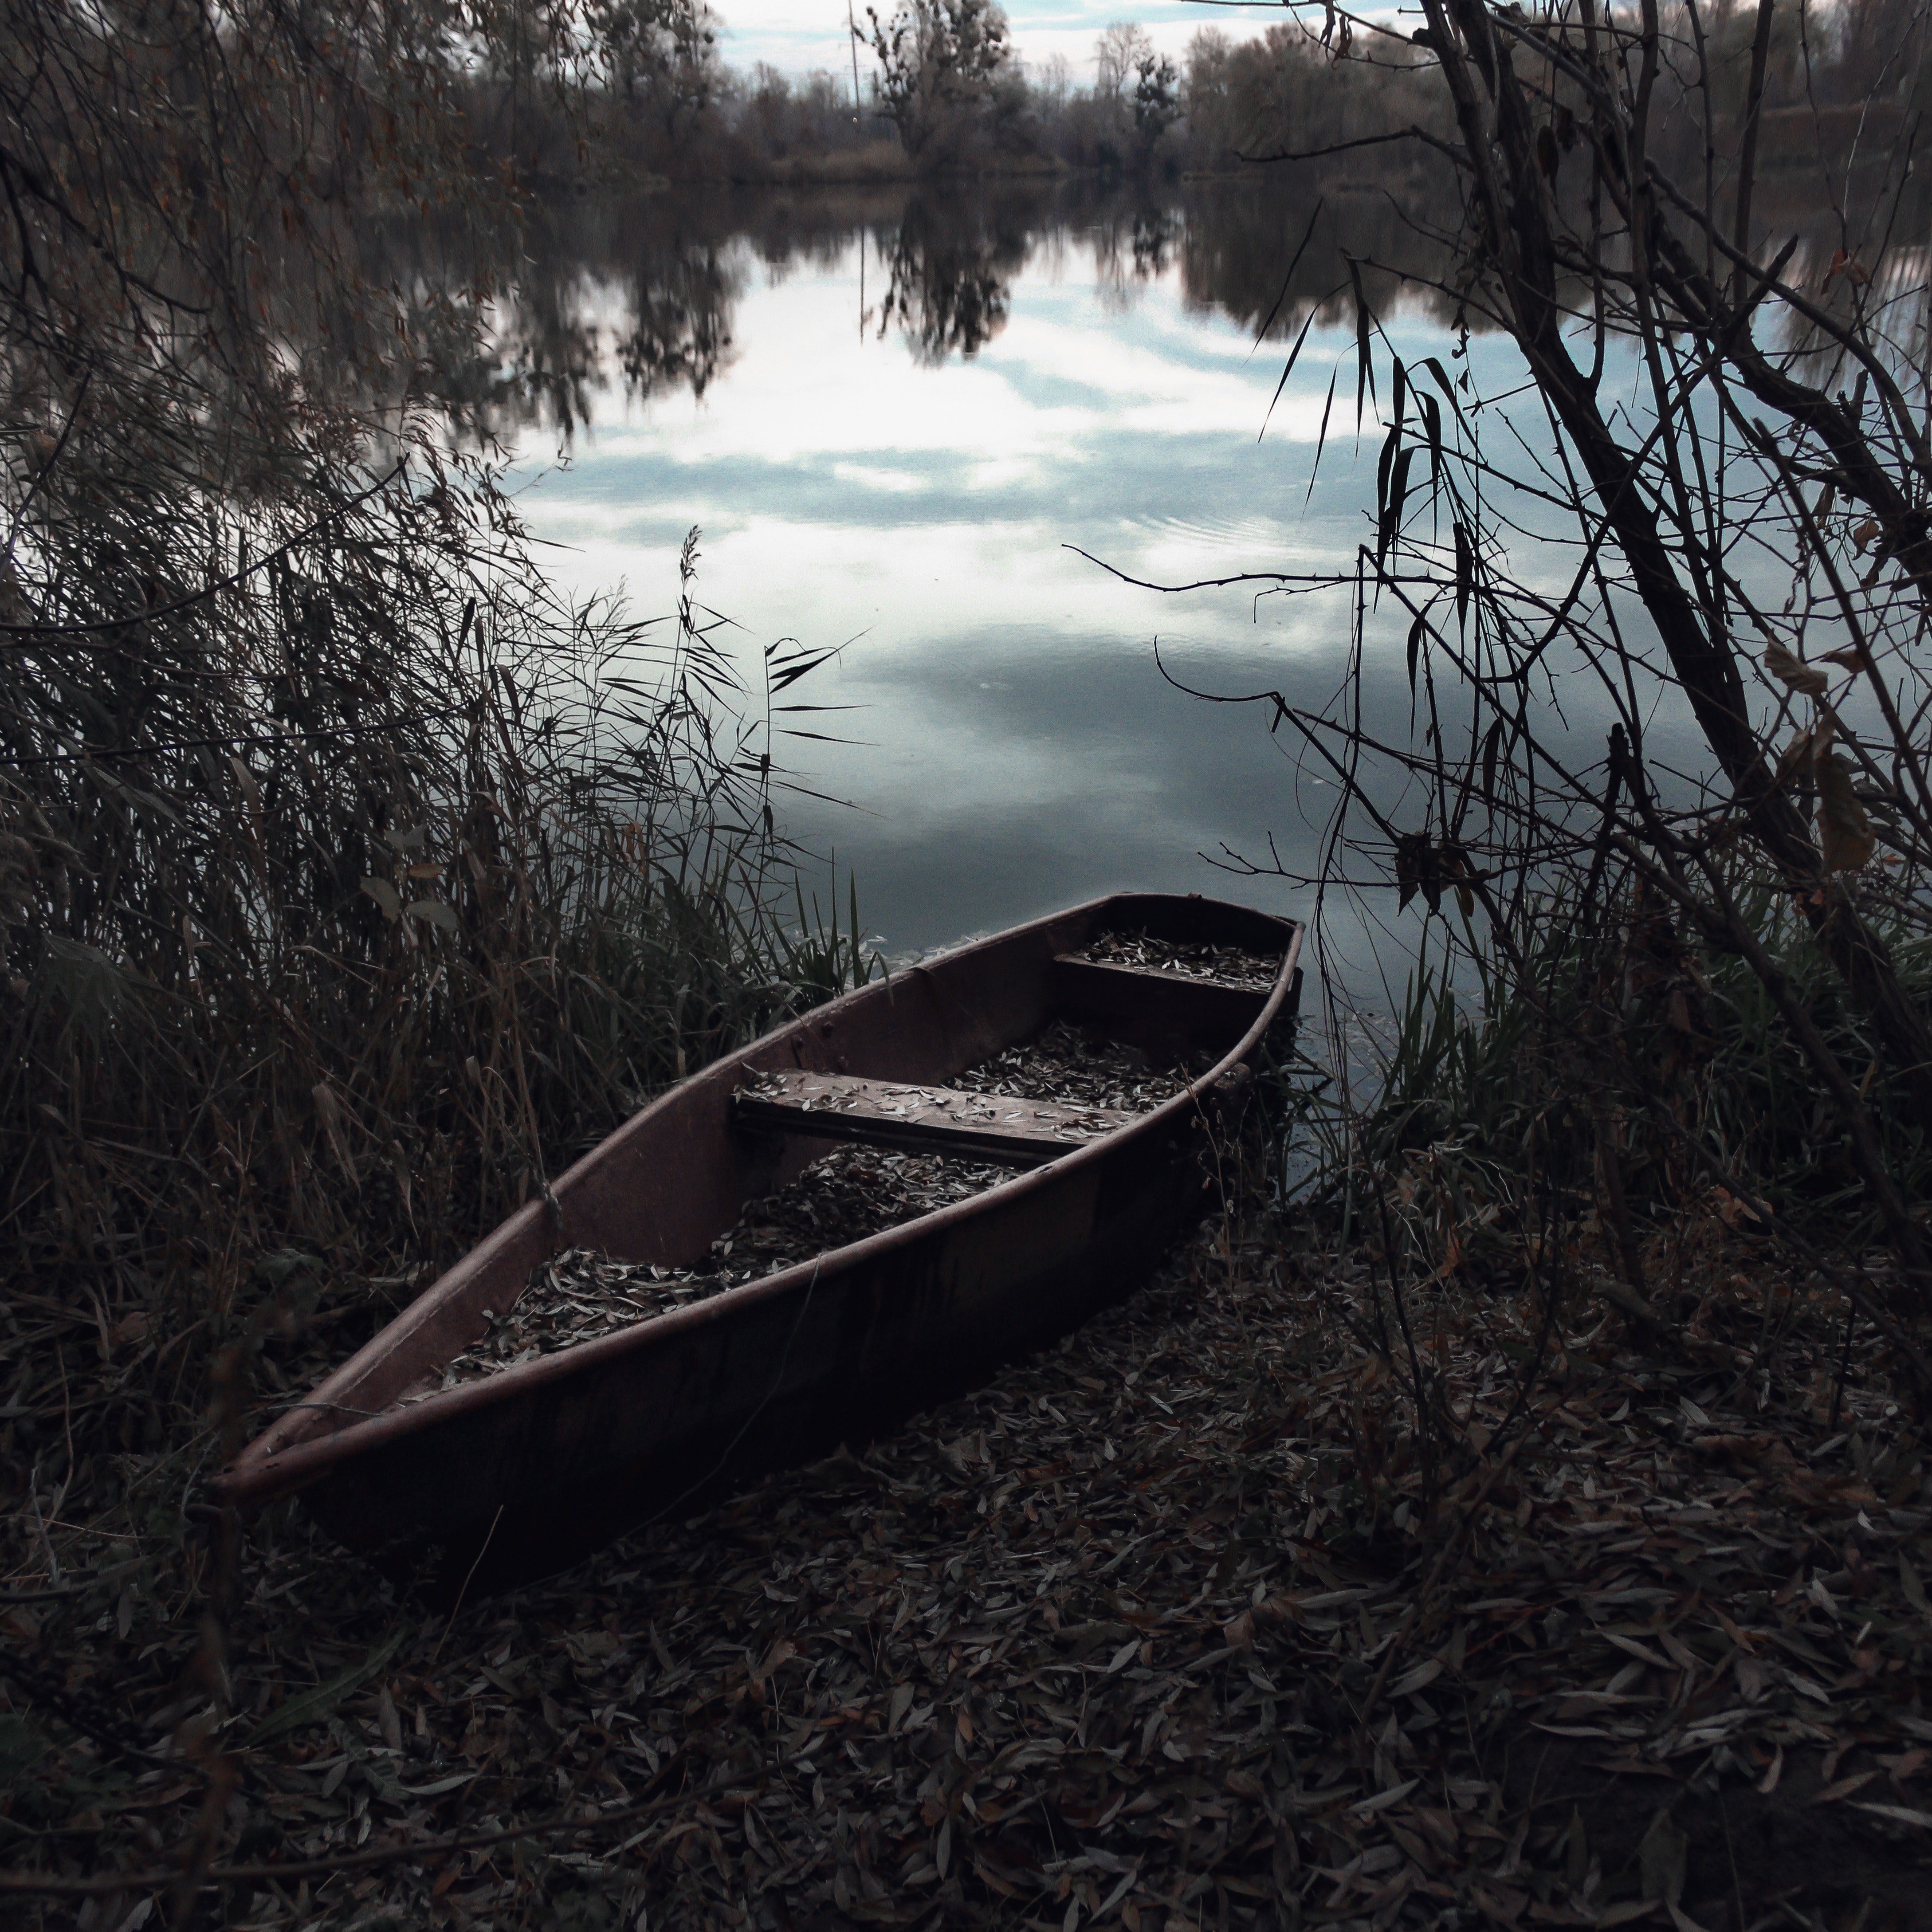 brown row boat on body of water painting  u00b7 free stock photo